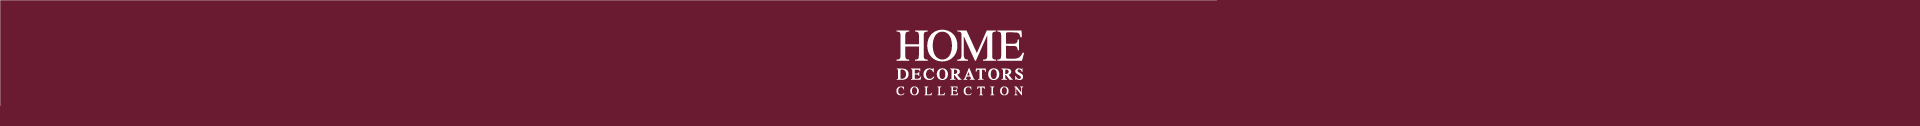 Home Decorator's Collection banner